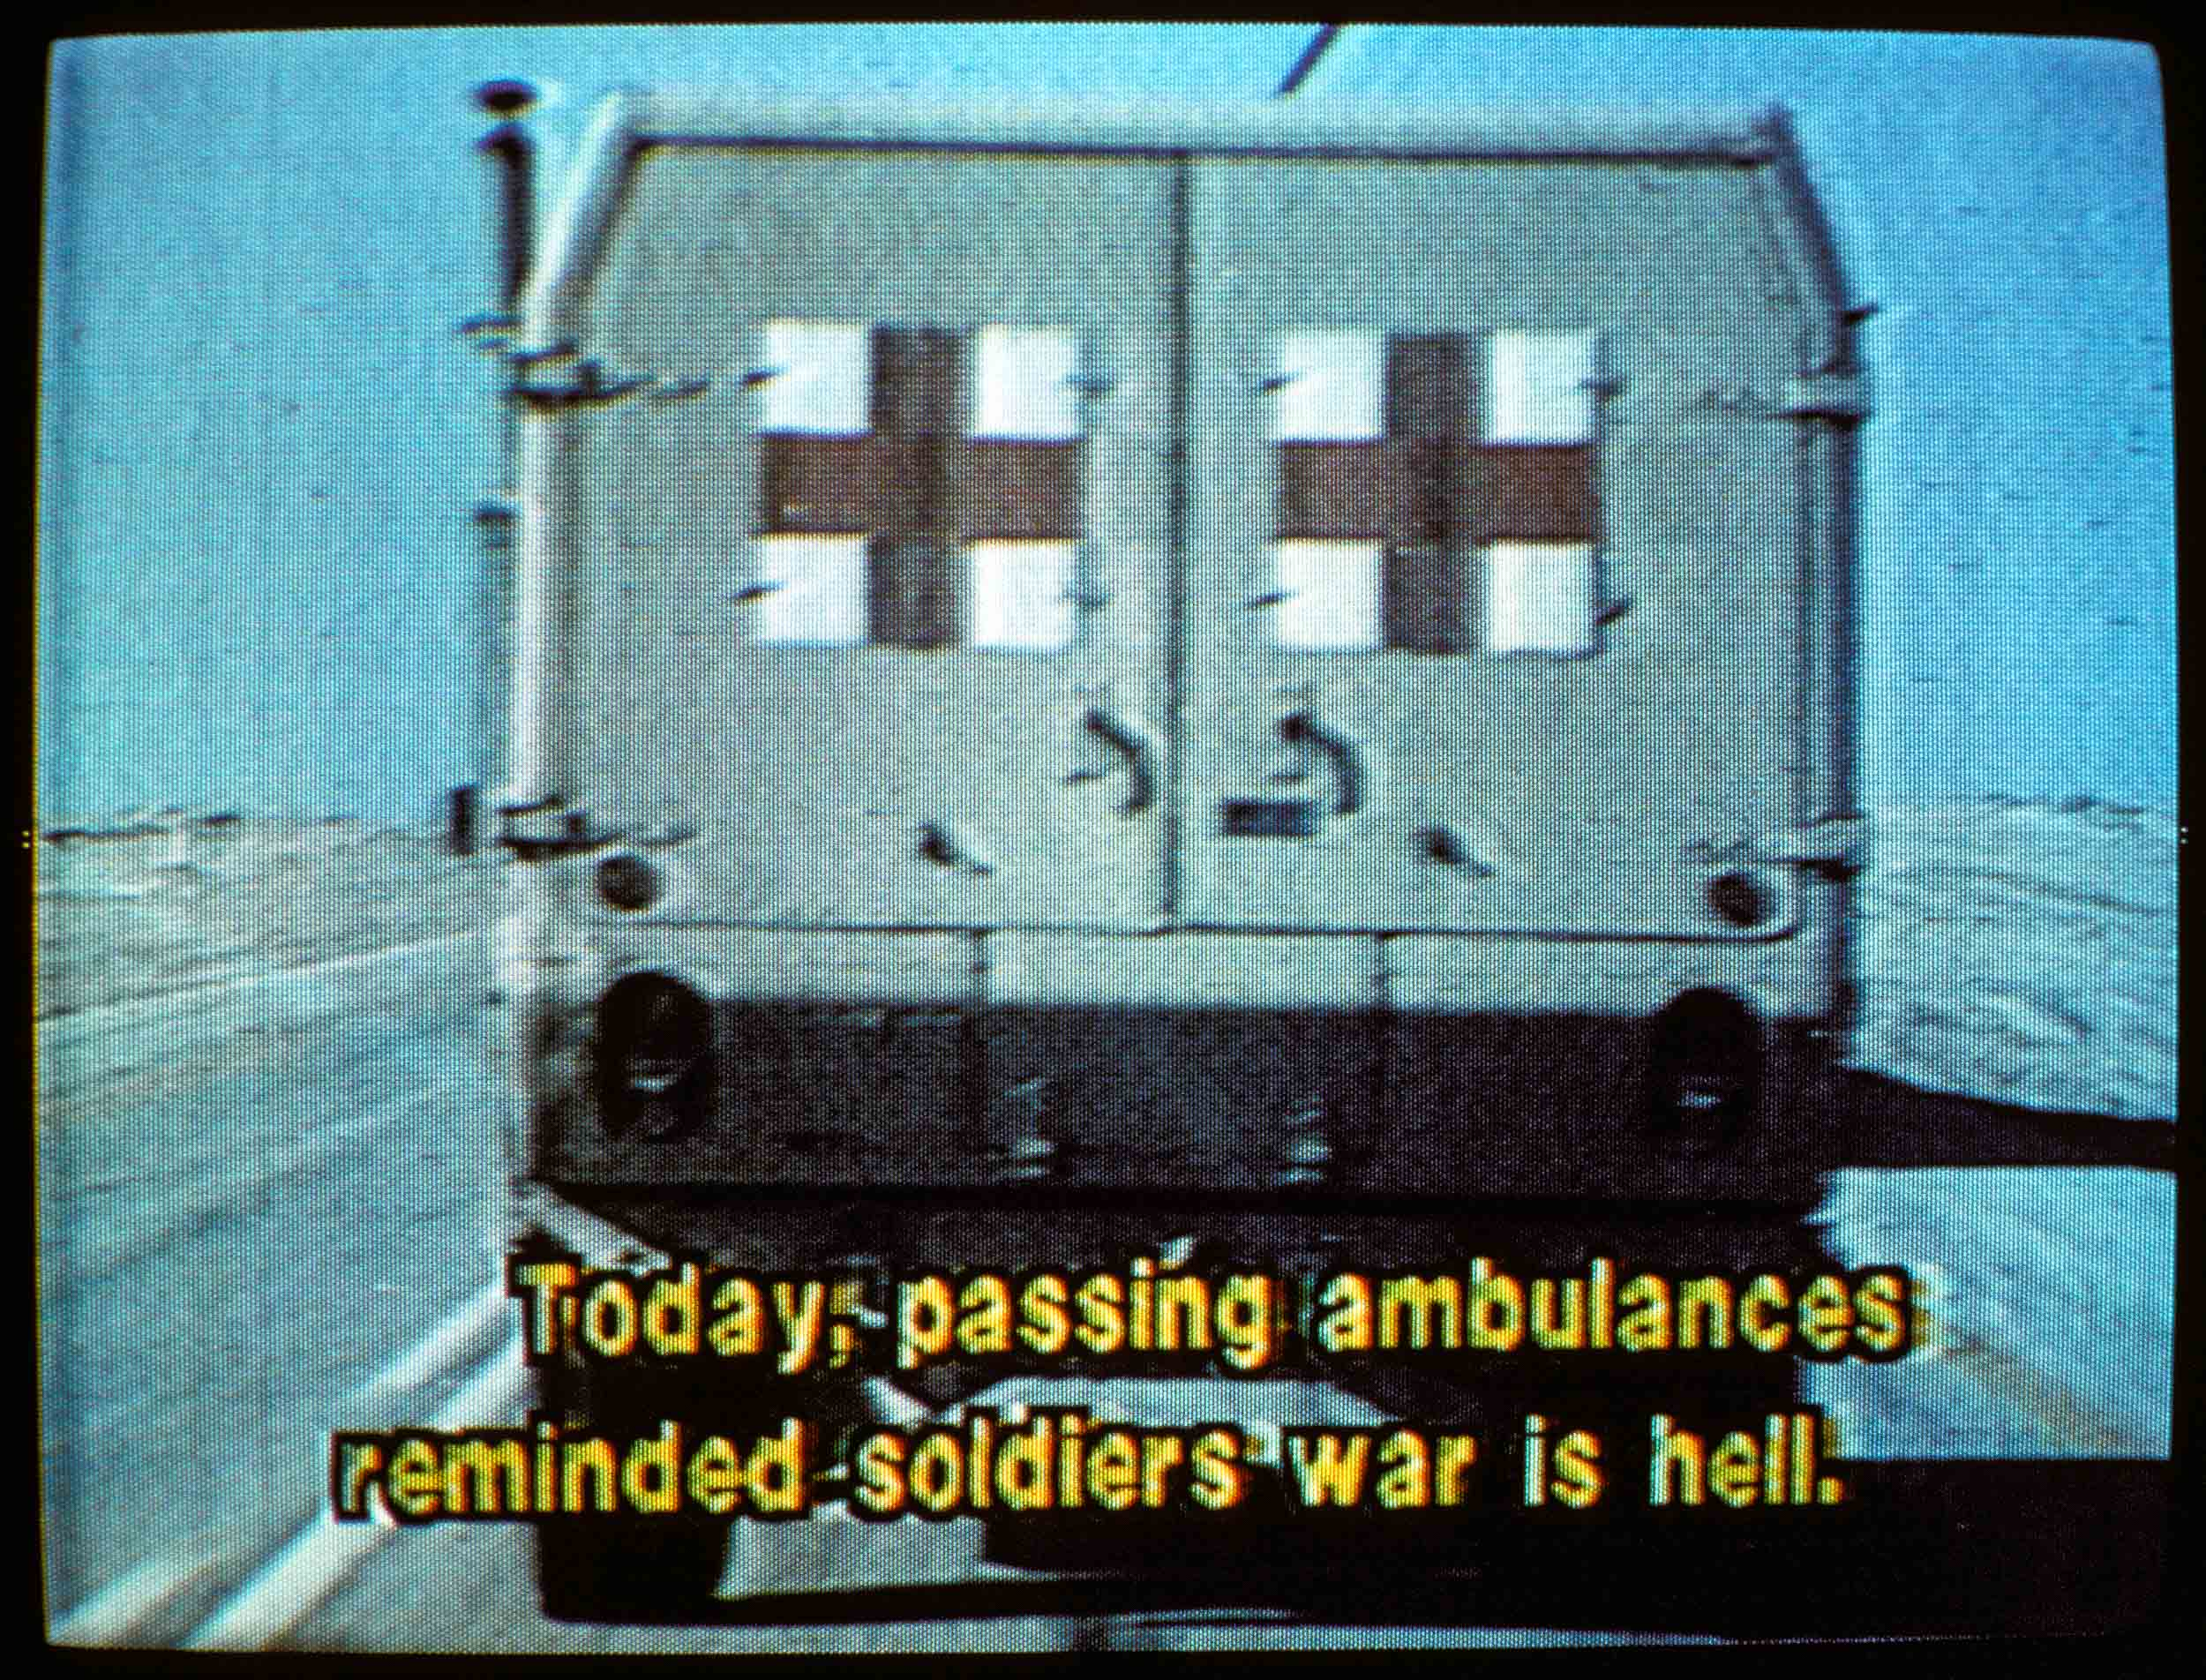 Today passing ambulances reminded soldiers war is hell.